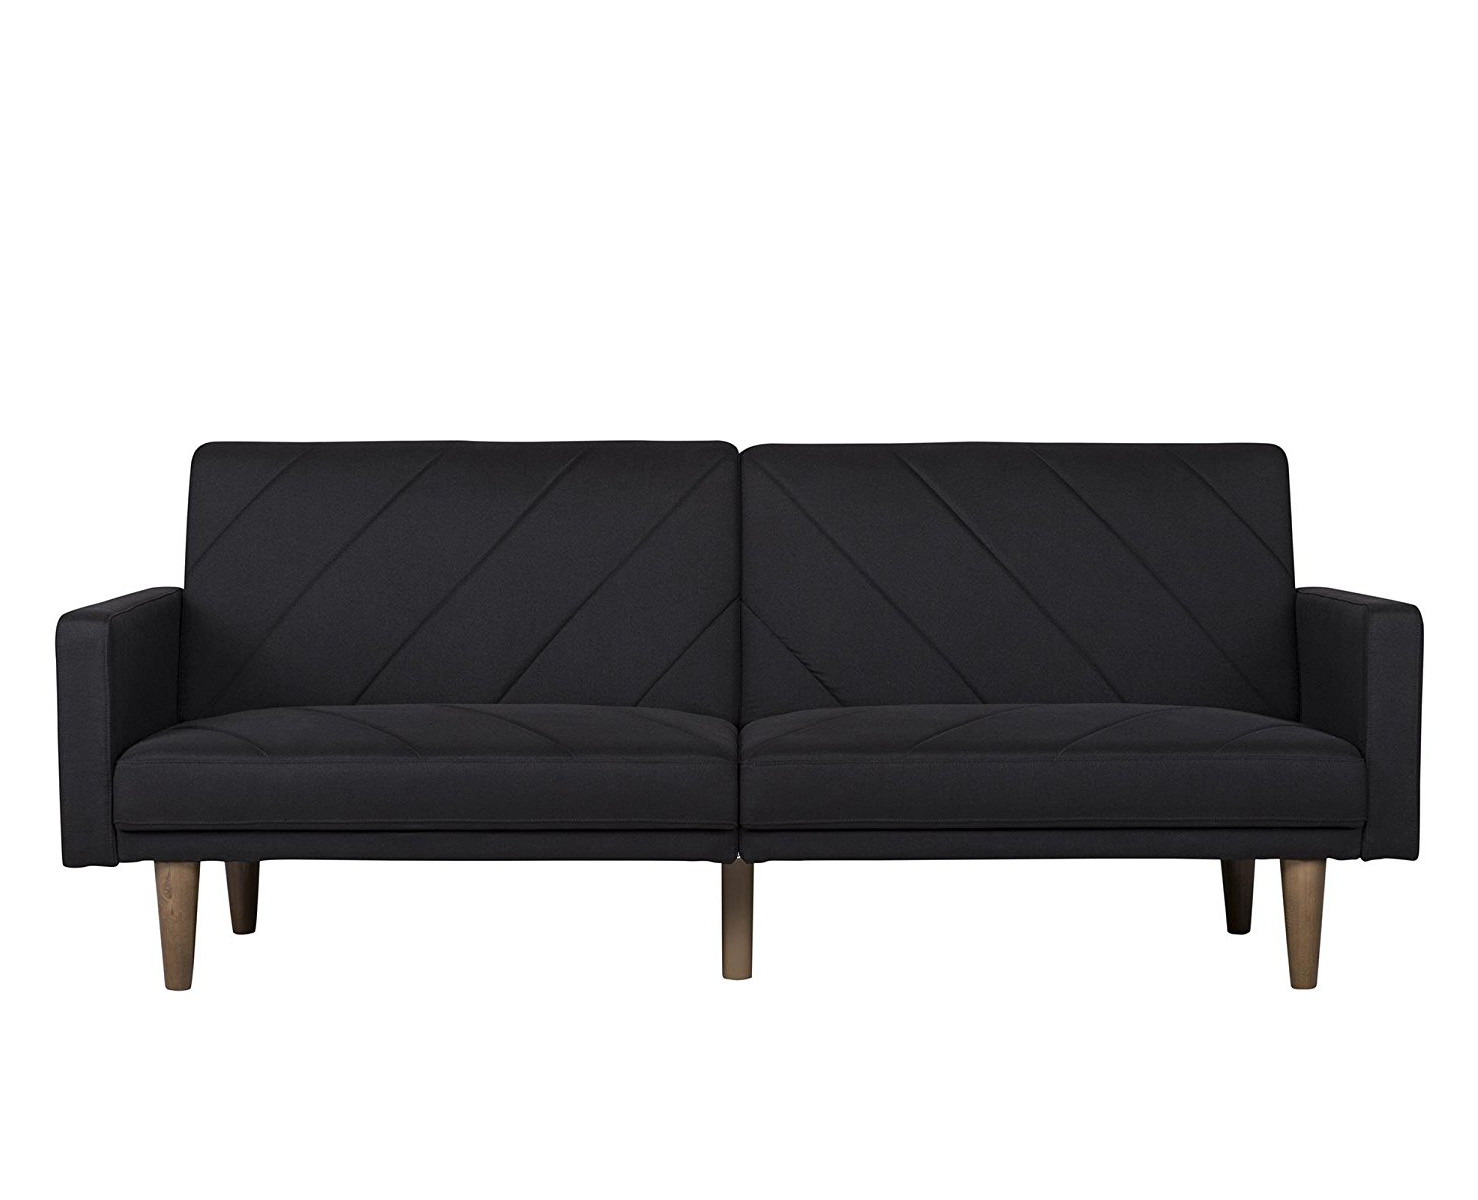 Minimalist Linen Futon Couch With Retro Wood Legs